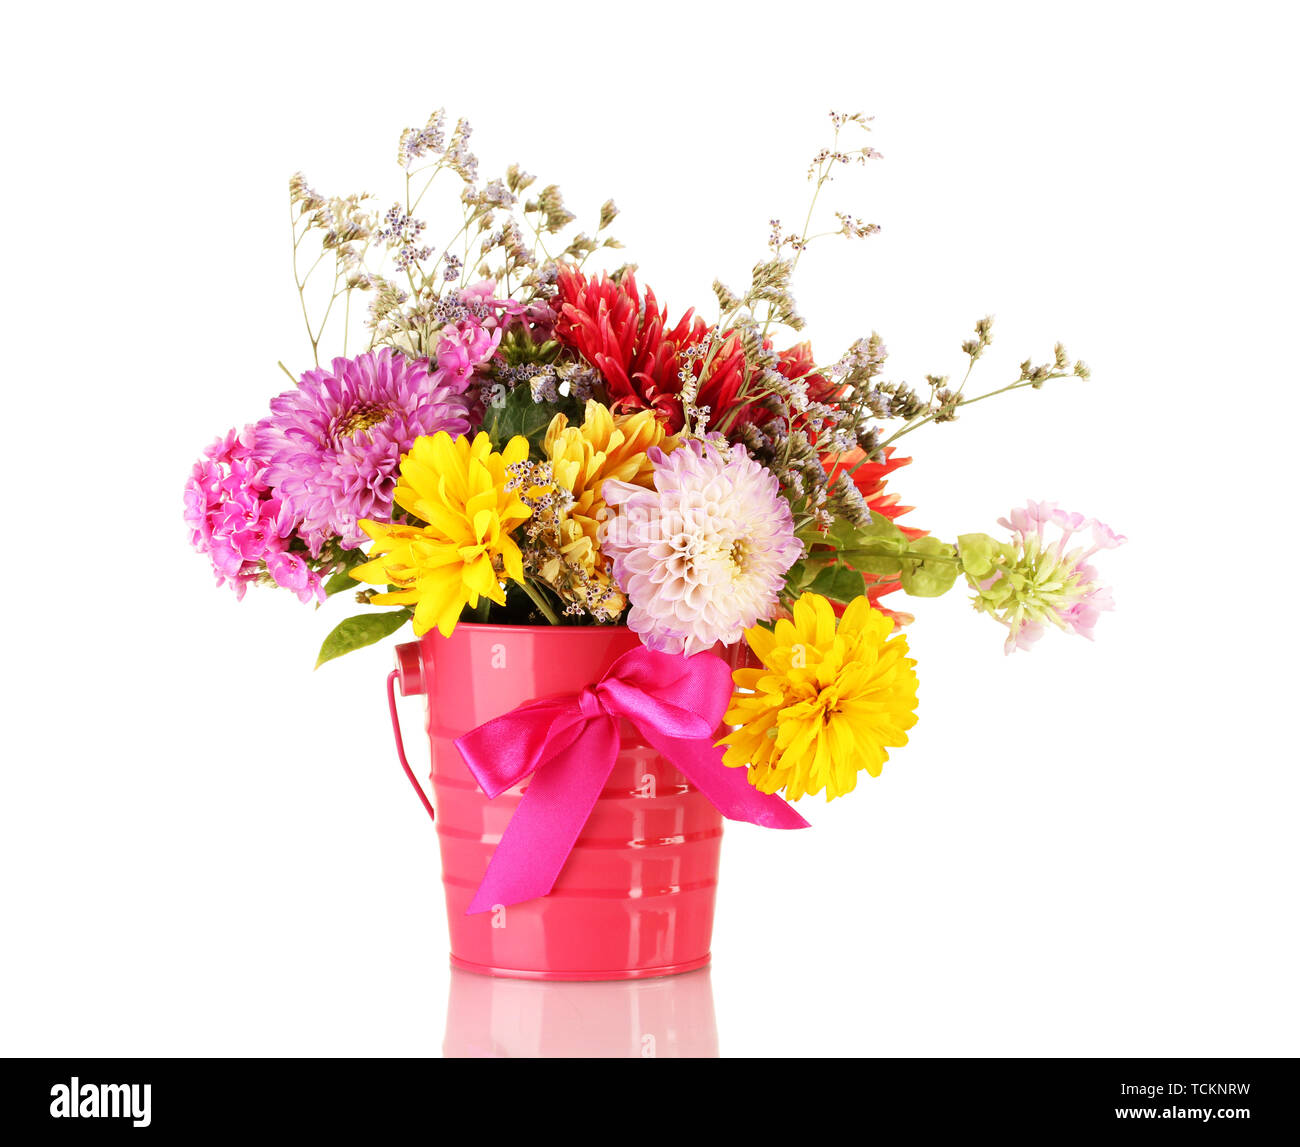 Bright pink bucket with flowers isolated on white - Stock Image